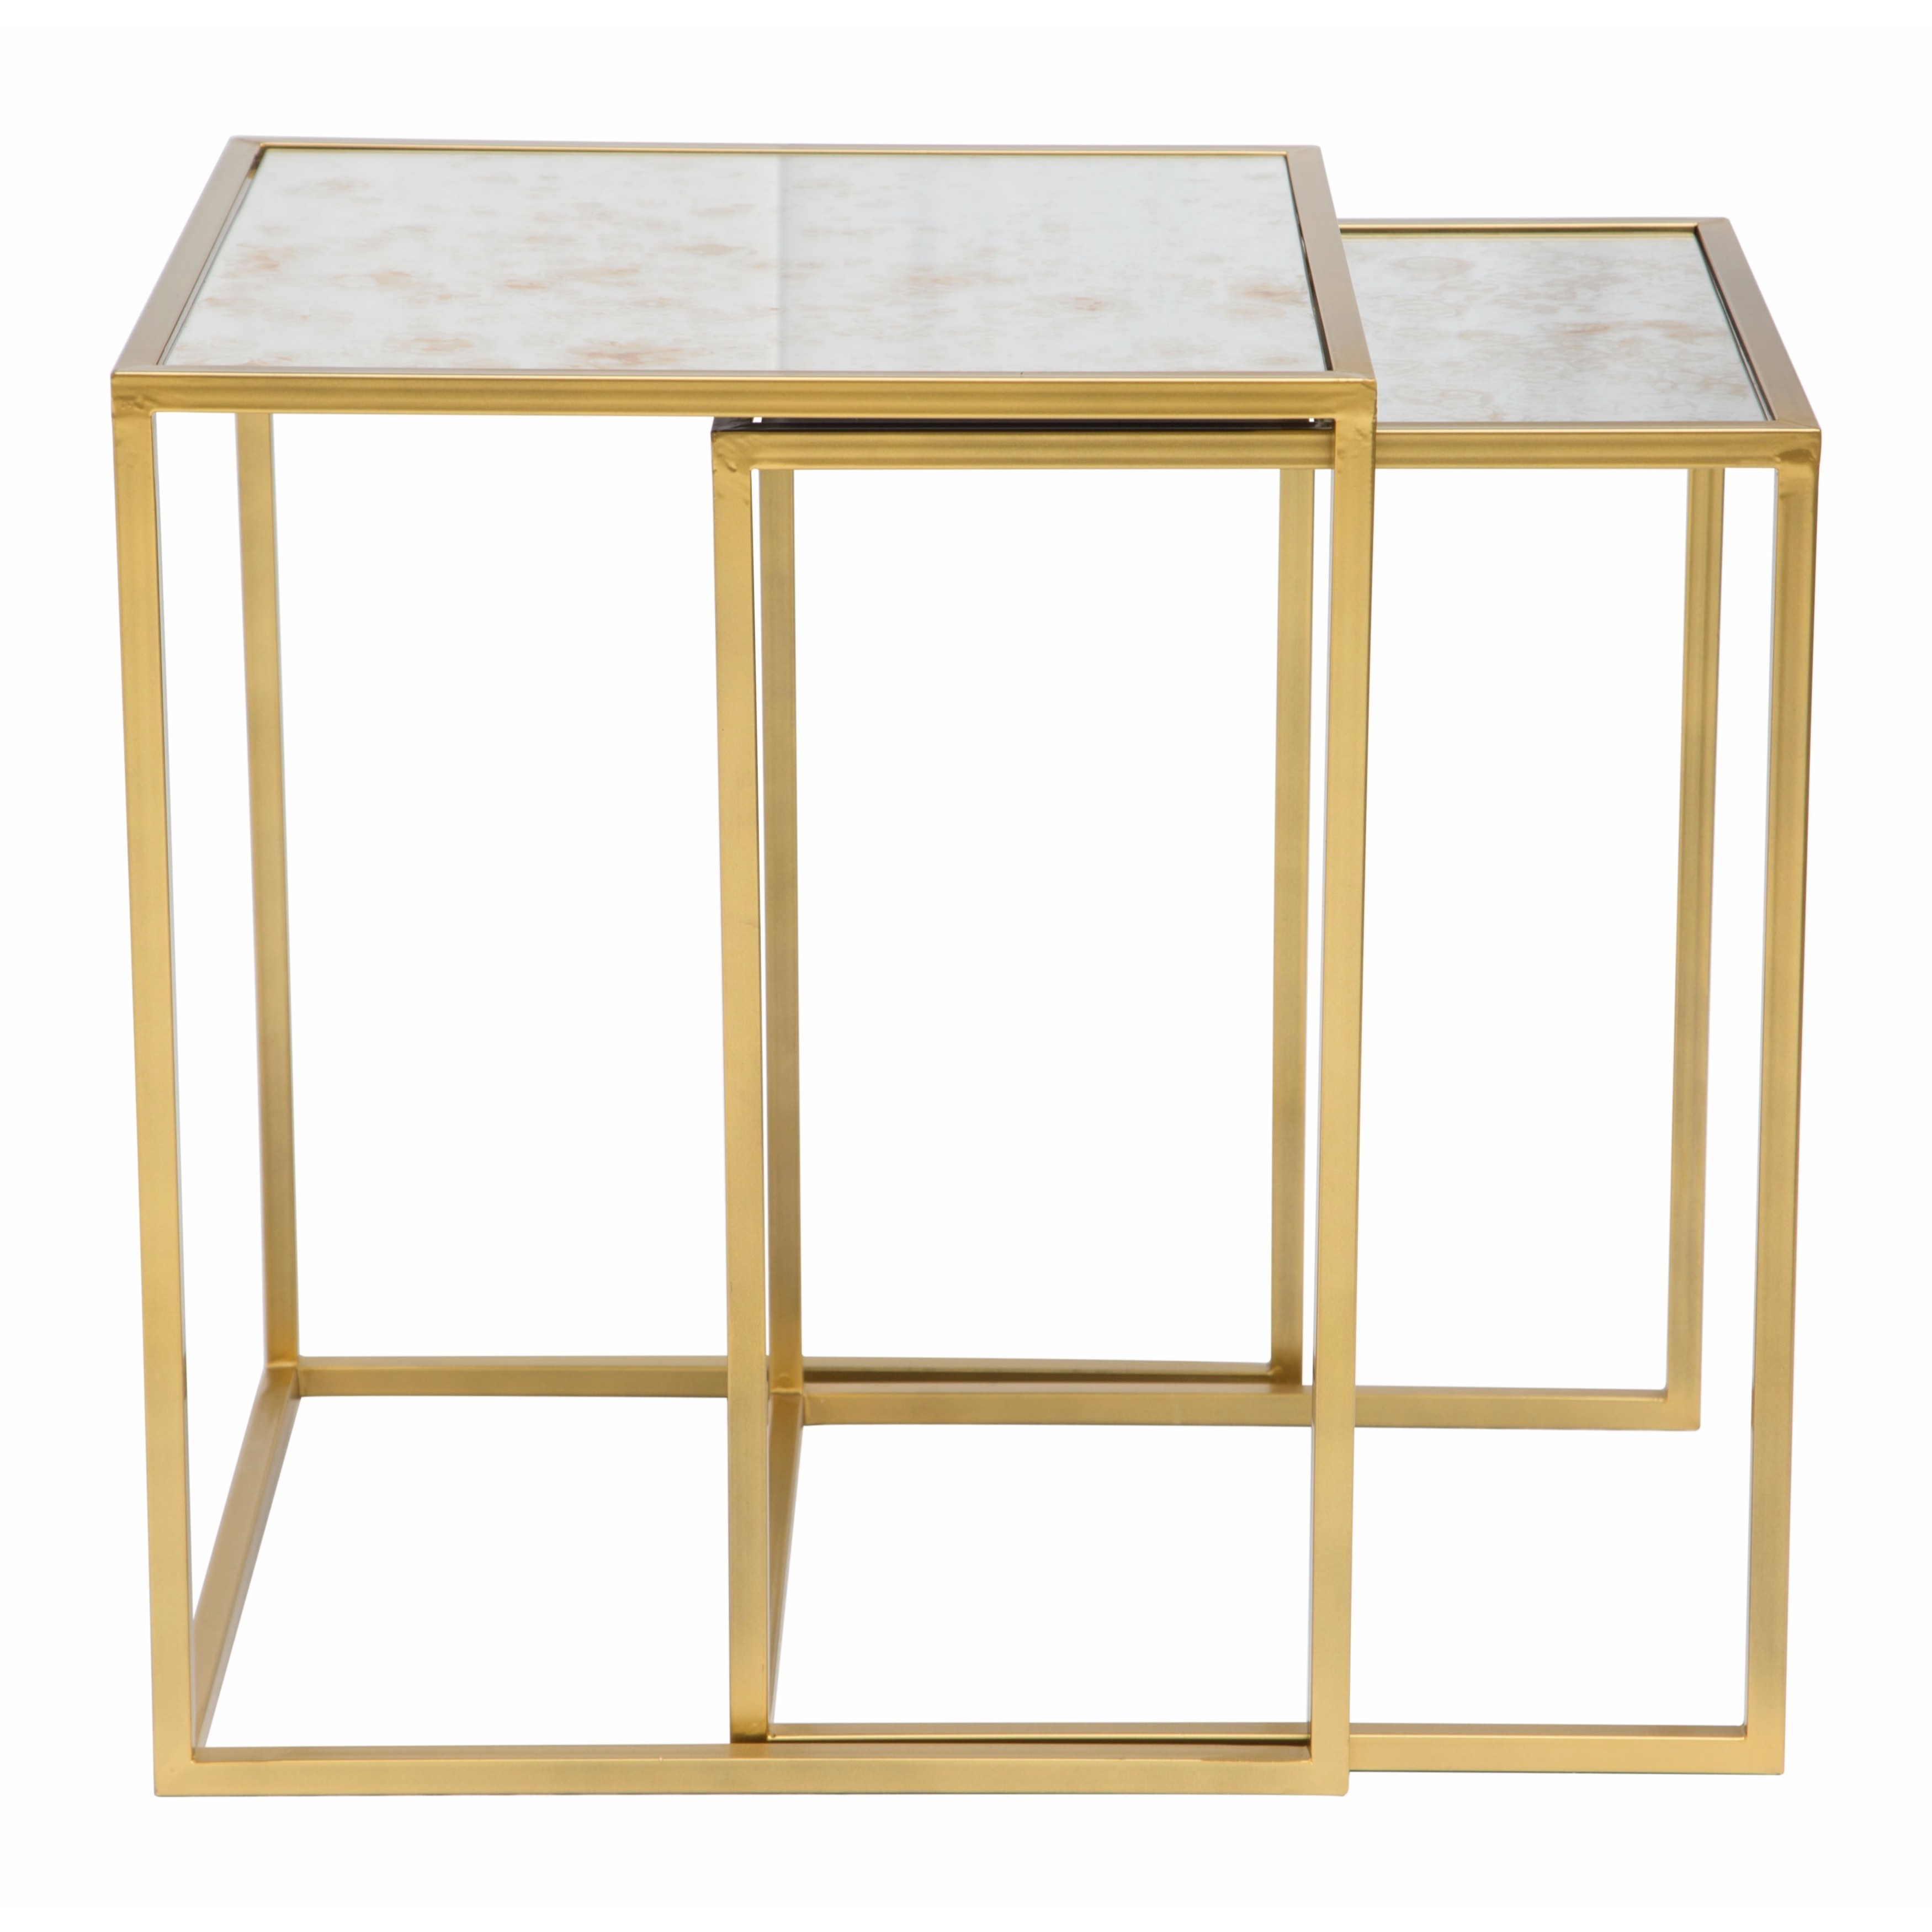 Zuo Calais Brass Nesting Tables (Set of 2) - Free Shipping Today -  Overstock.com - 22226391